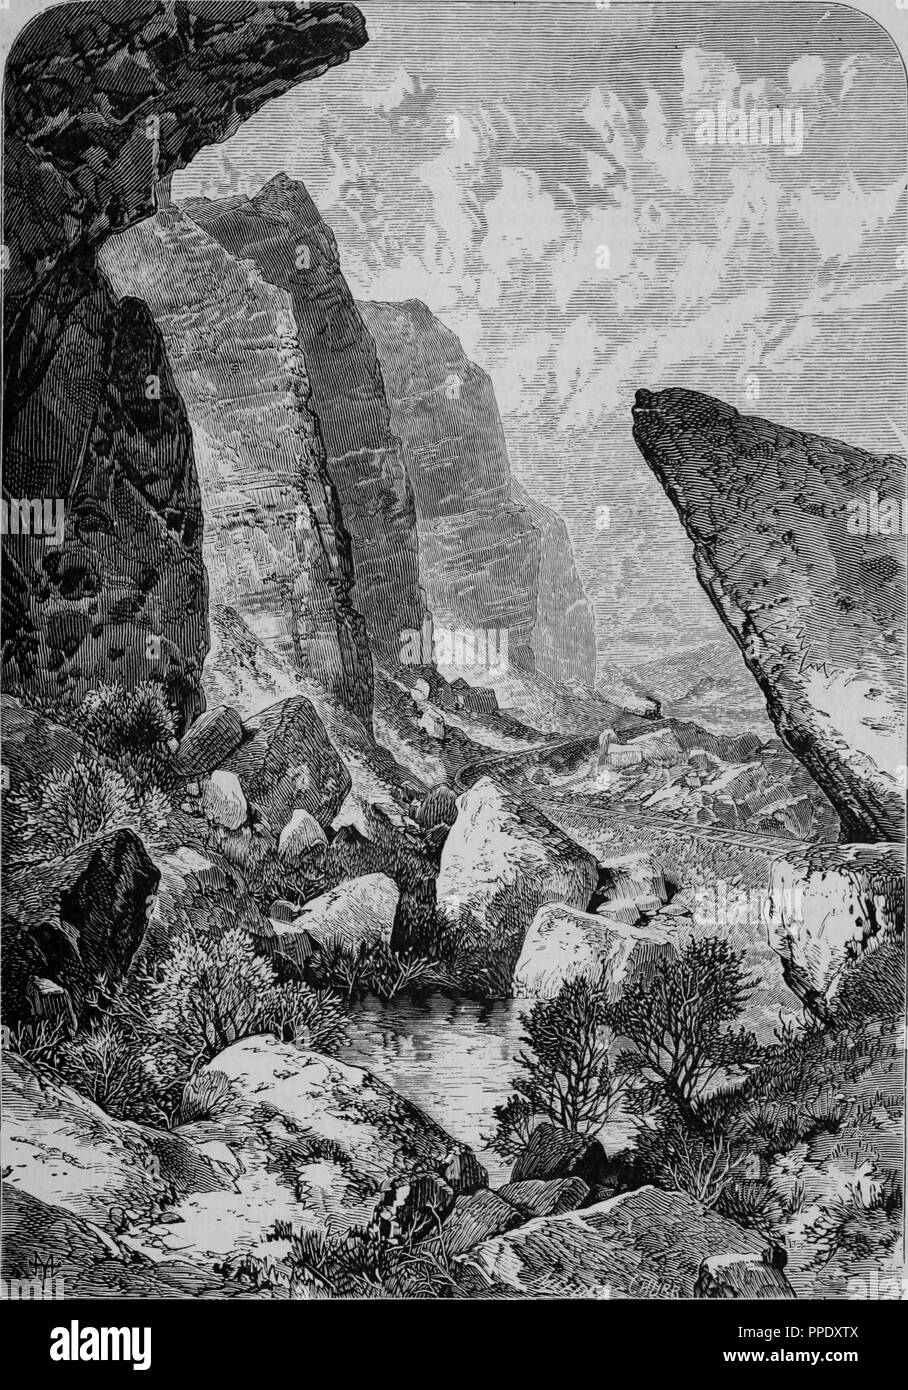 Engraving of the cliffs of Echo Canyon in Utah, from the book 'The Pacific tourist', 1877. Courtesy Internet Archive. () - Stock Image